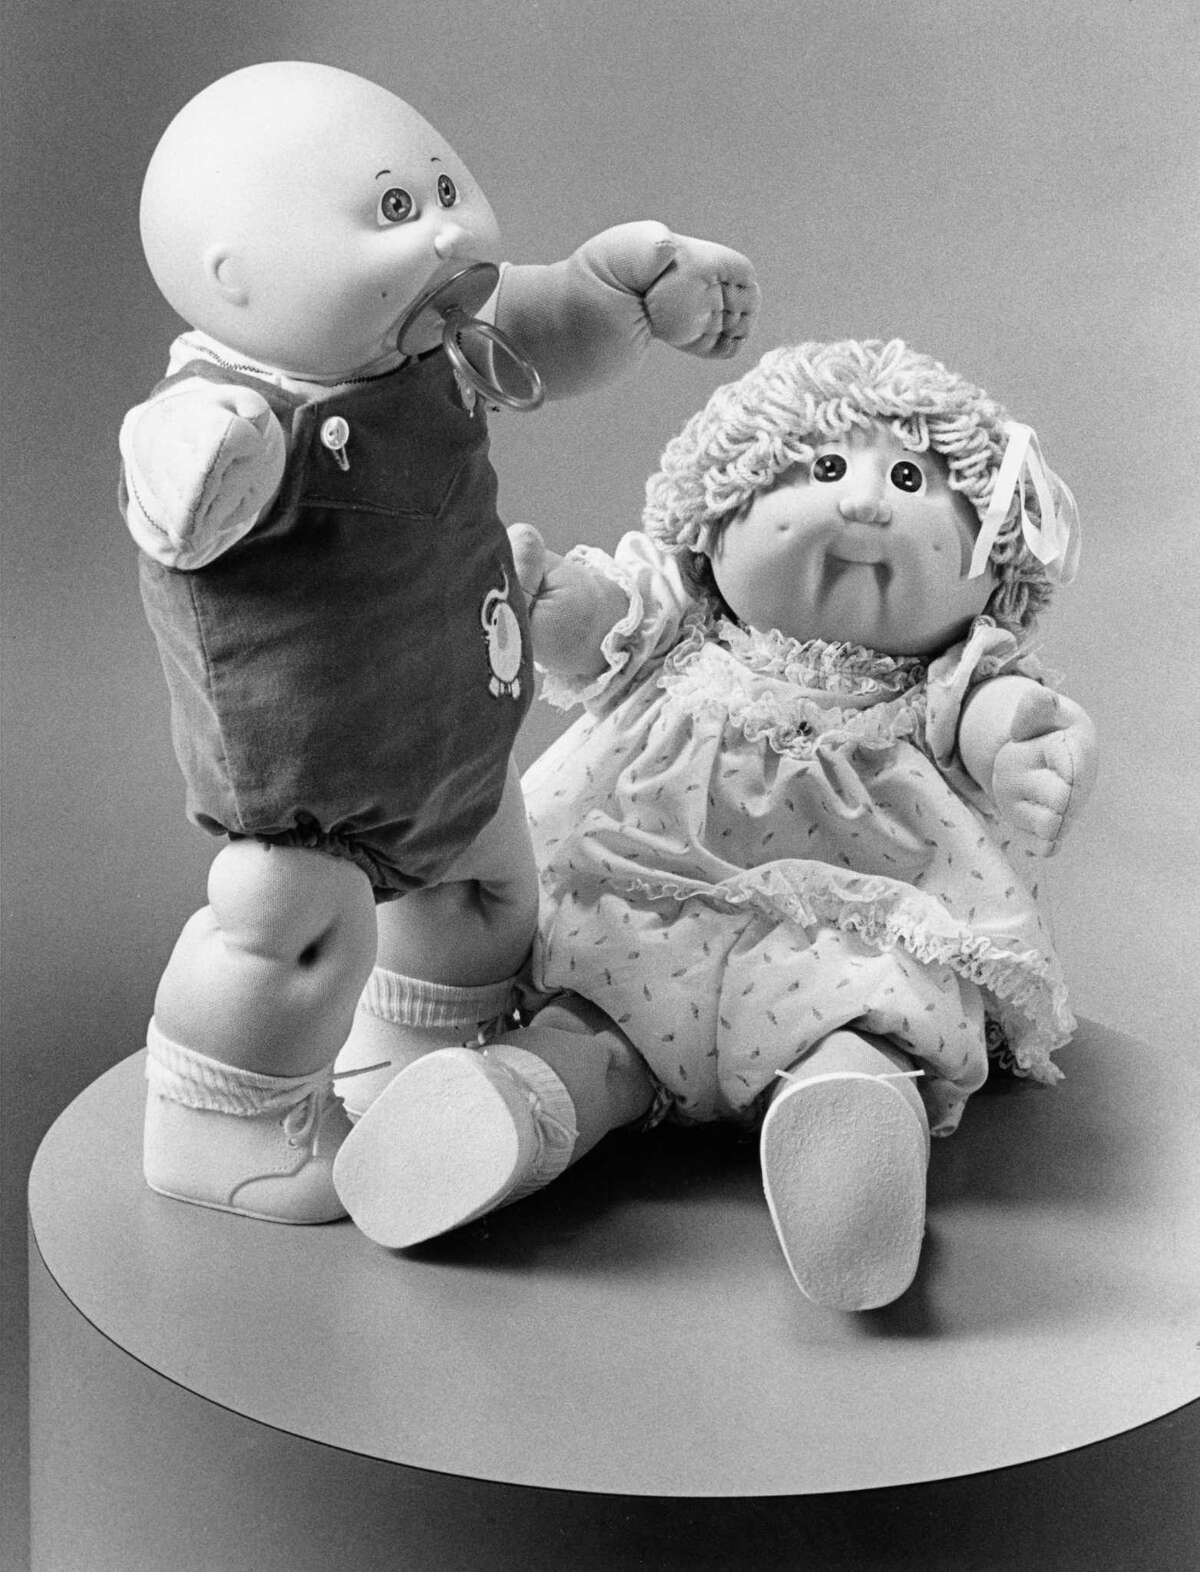 """Cabbage Patch Kids dolls, manufactured by Coleco, come with adoption papers and a birth certificate. The 16-inch dolls retail for $20 to $40 and no two are exactly alike. Demand for the dolls far exceeds supply this Christmas season. The papers on these Kids list their """"birth names"""" as Clinton Lewis and Angela Hilde."""